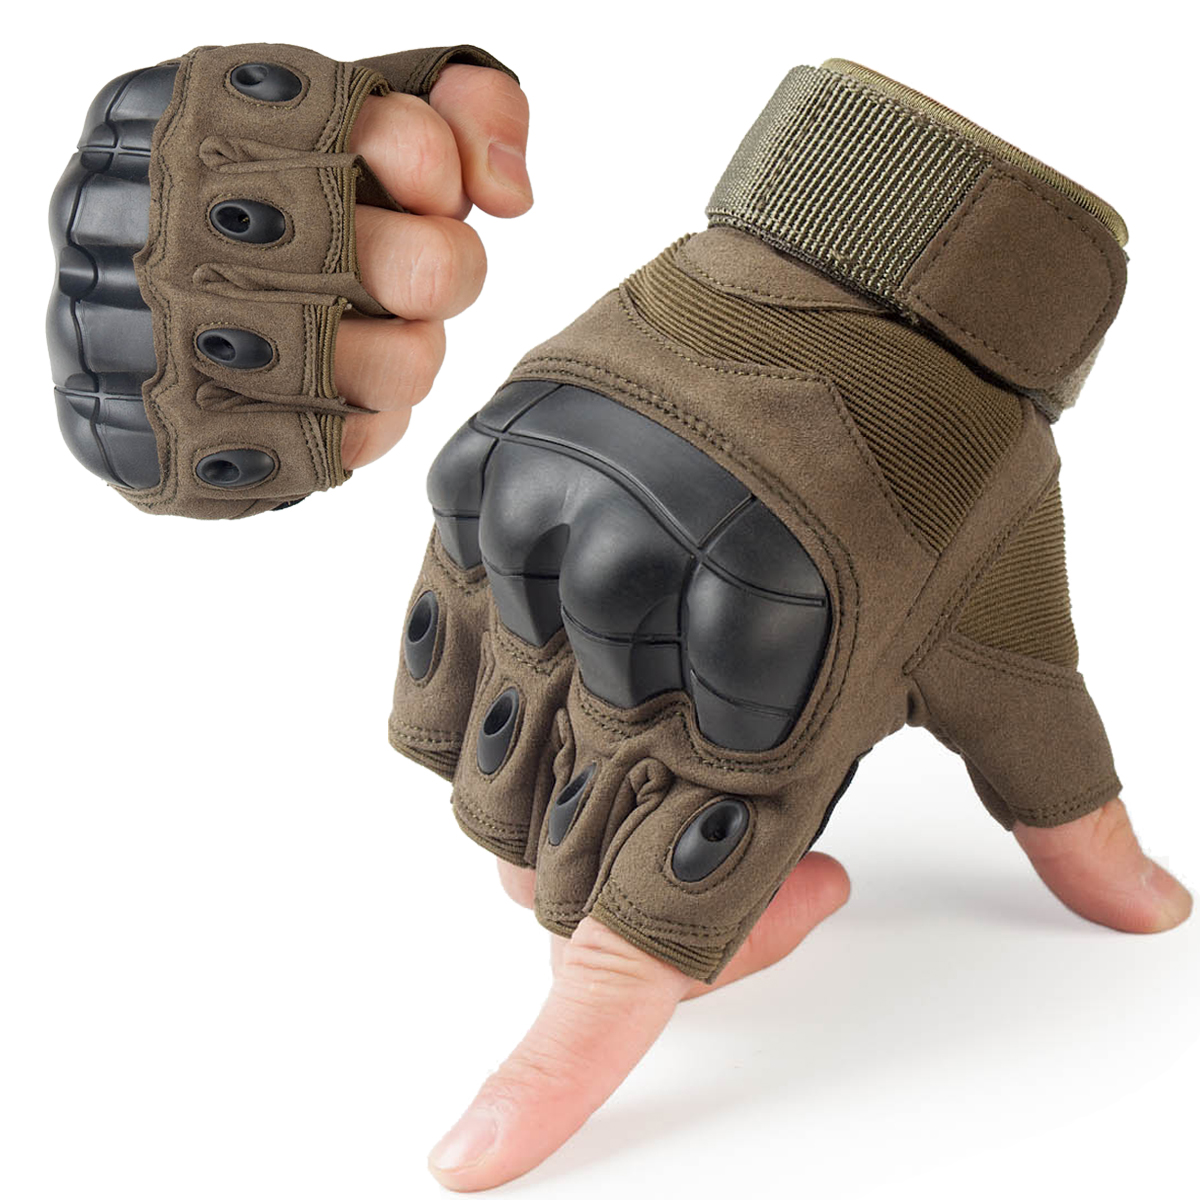 Fingerless impact gloves - Tactical Fingerless Gloves Military Army Combat Paintball Airsoft Shooting Anti Skid Carbon Hard Knuckle Half